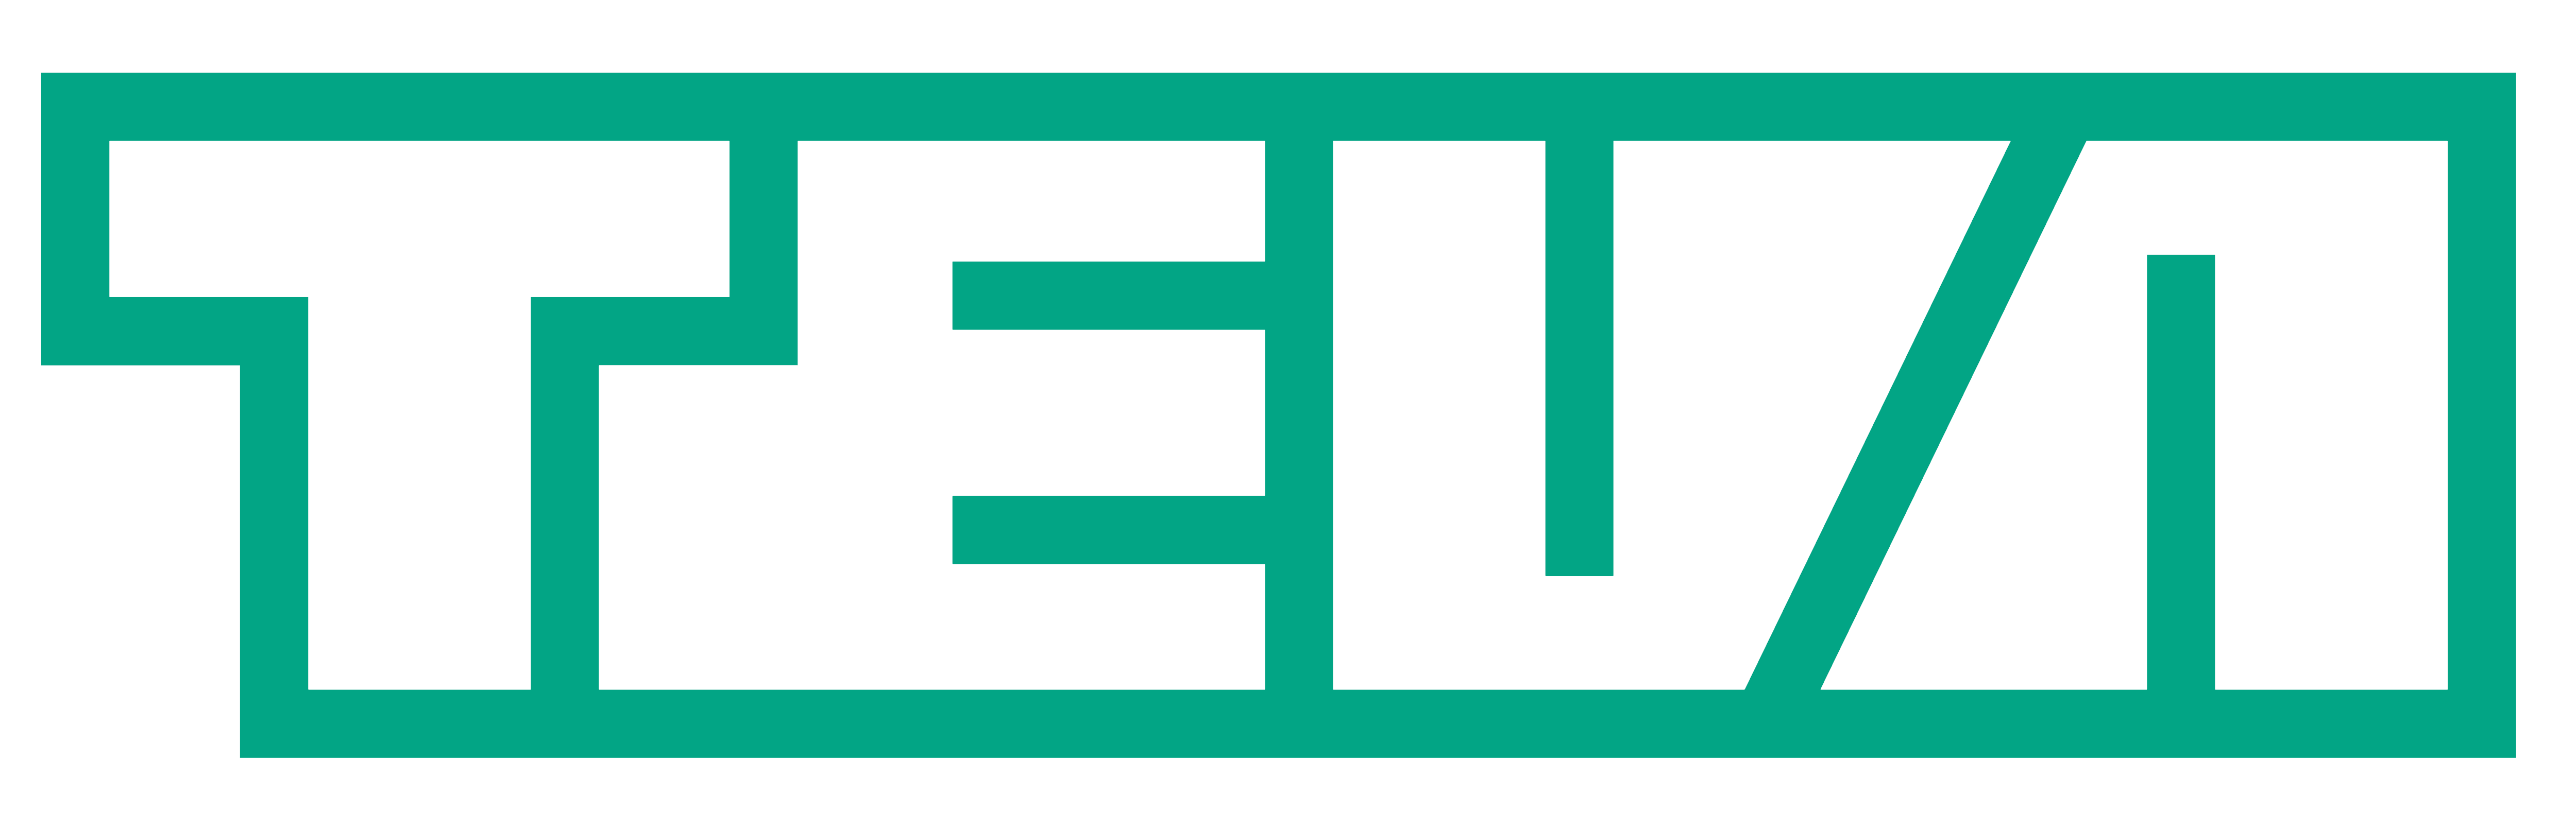 Teva Logos Download